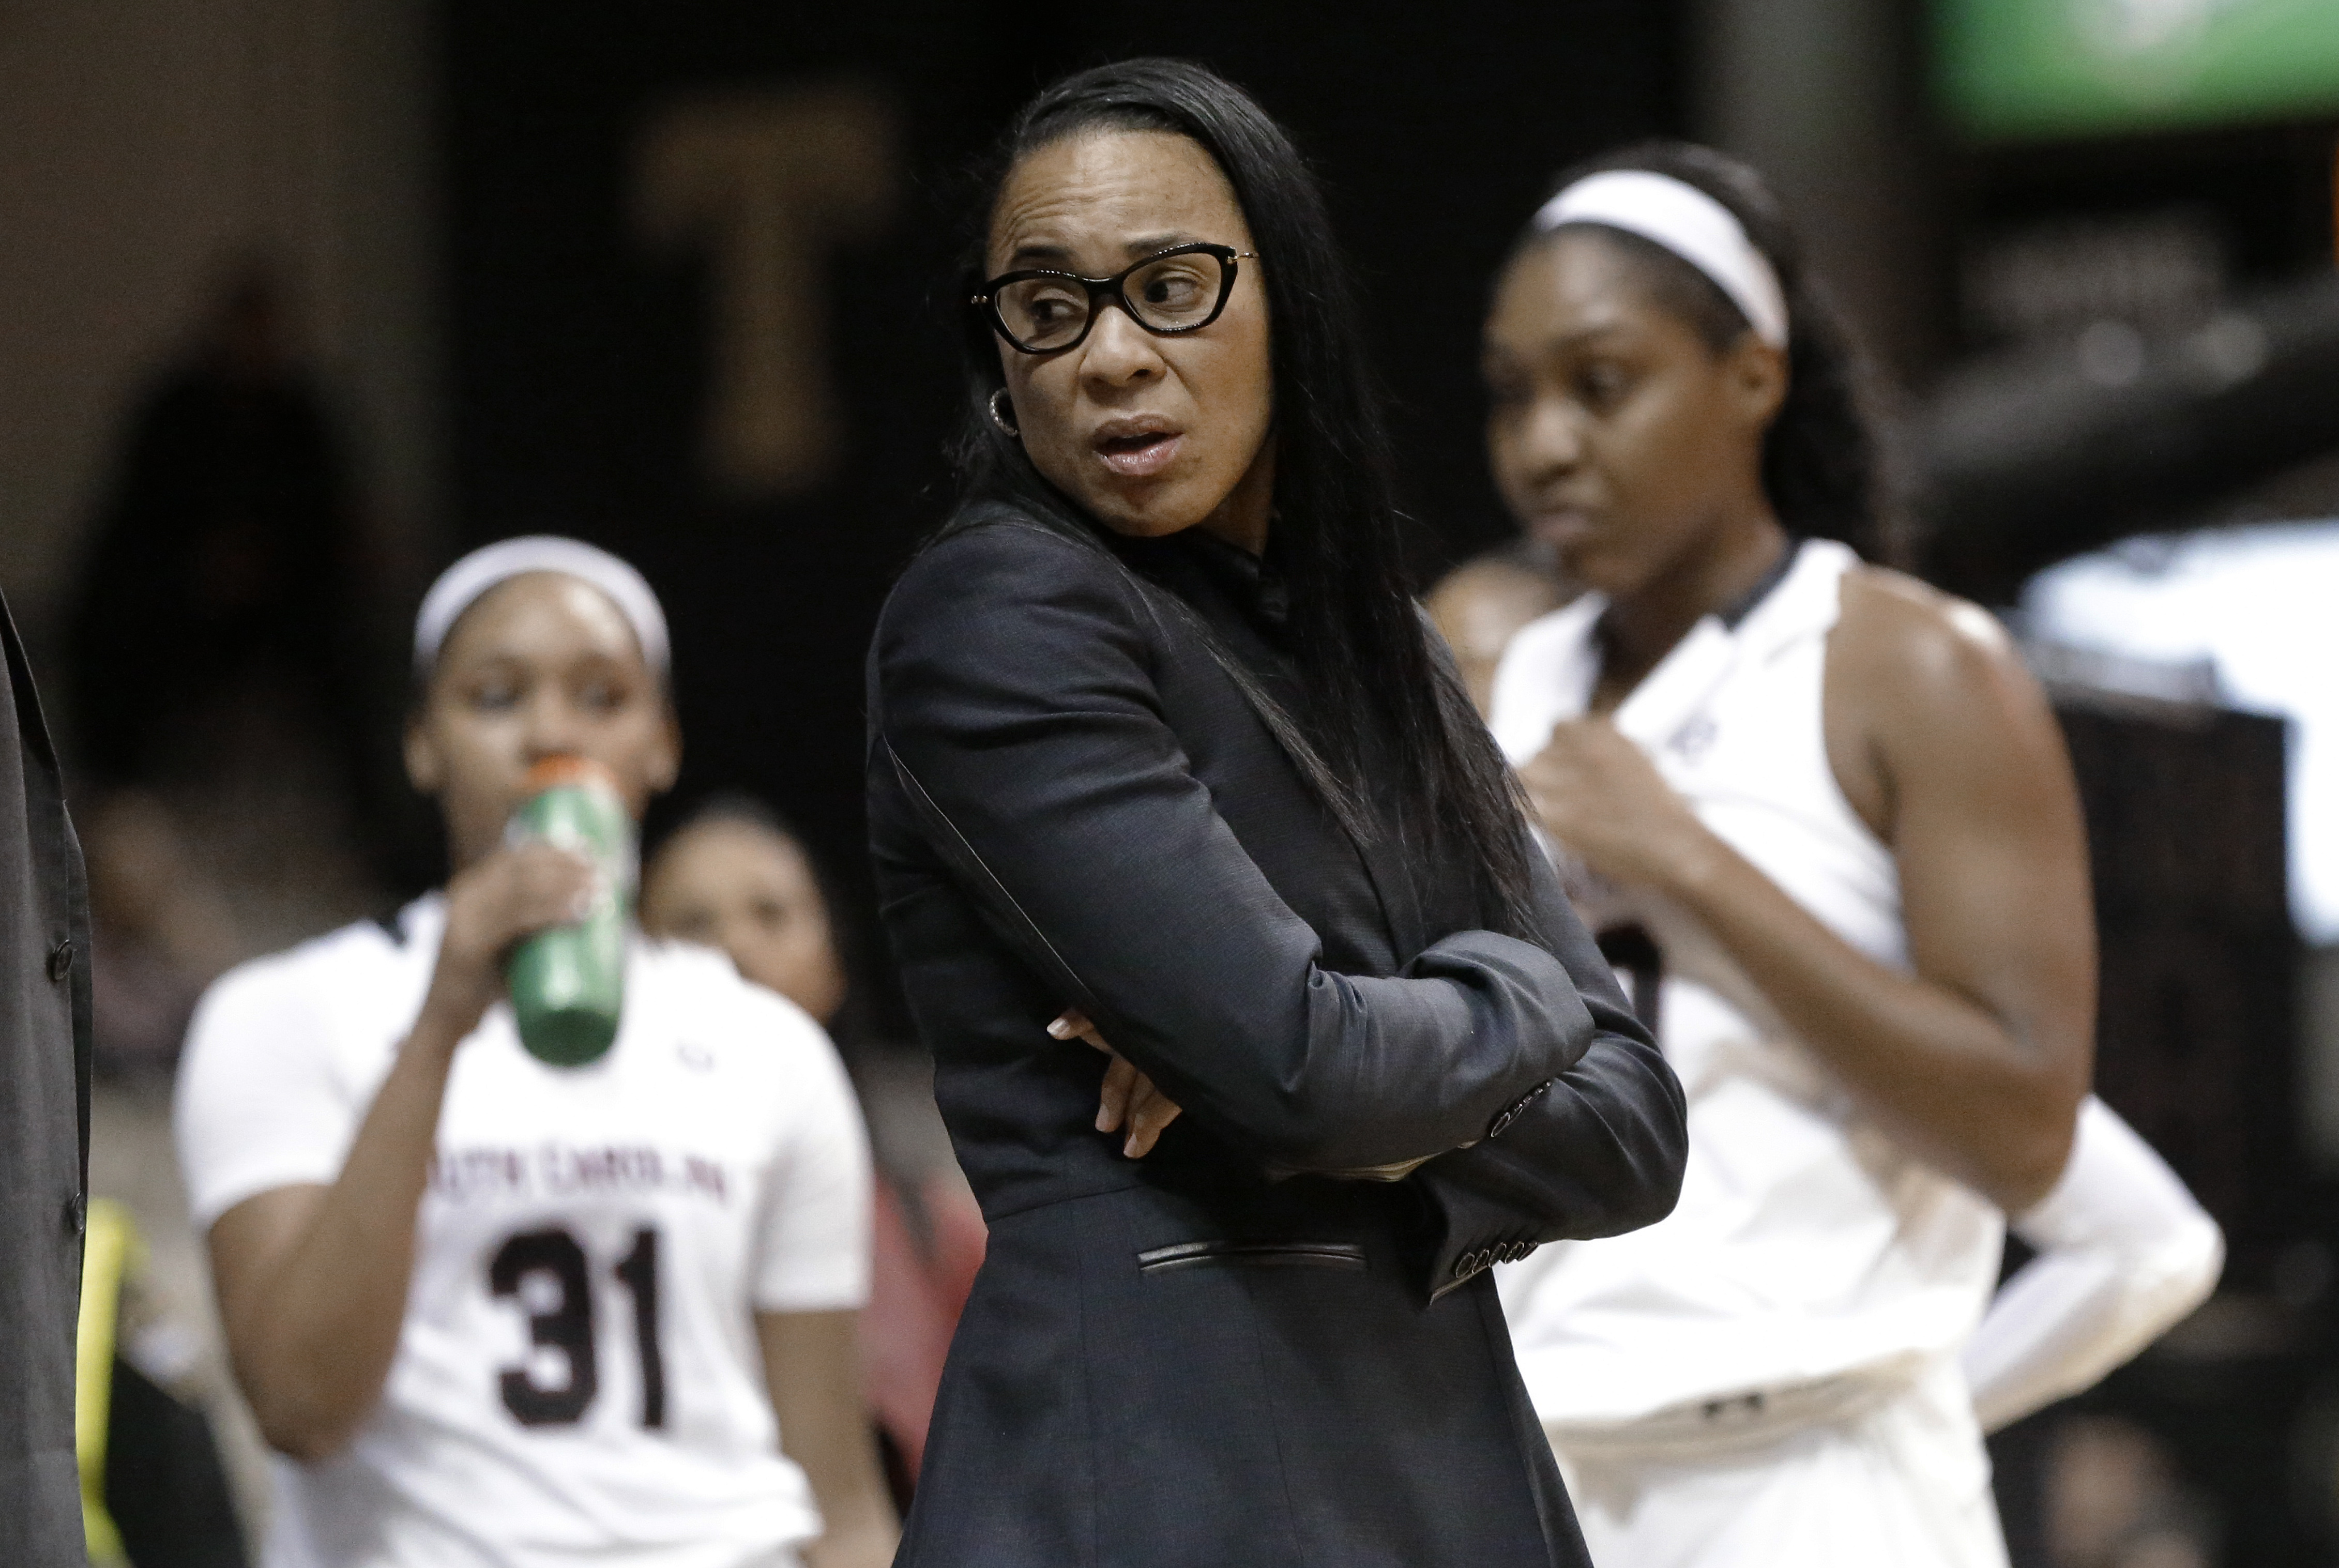 FILE - In this Jan. 7, 2016, file photo, South Carolina coach Dawn Staley talks during a timeout in the first half of the team's NCAA college basketball game against Vanderbilt in Nashville, Tenn. Staley, also an assistant coach with the U.S. women's team